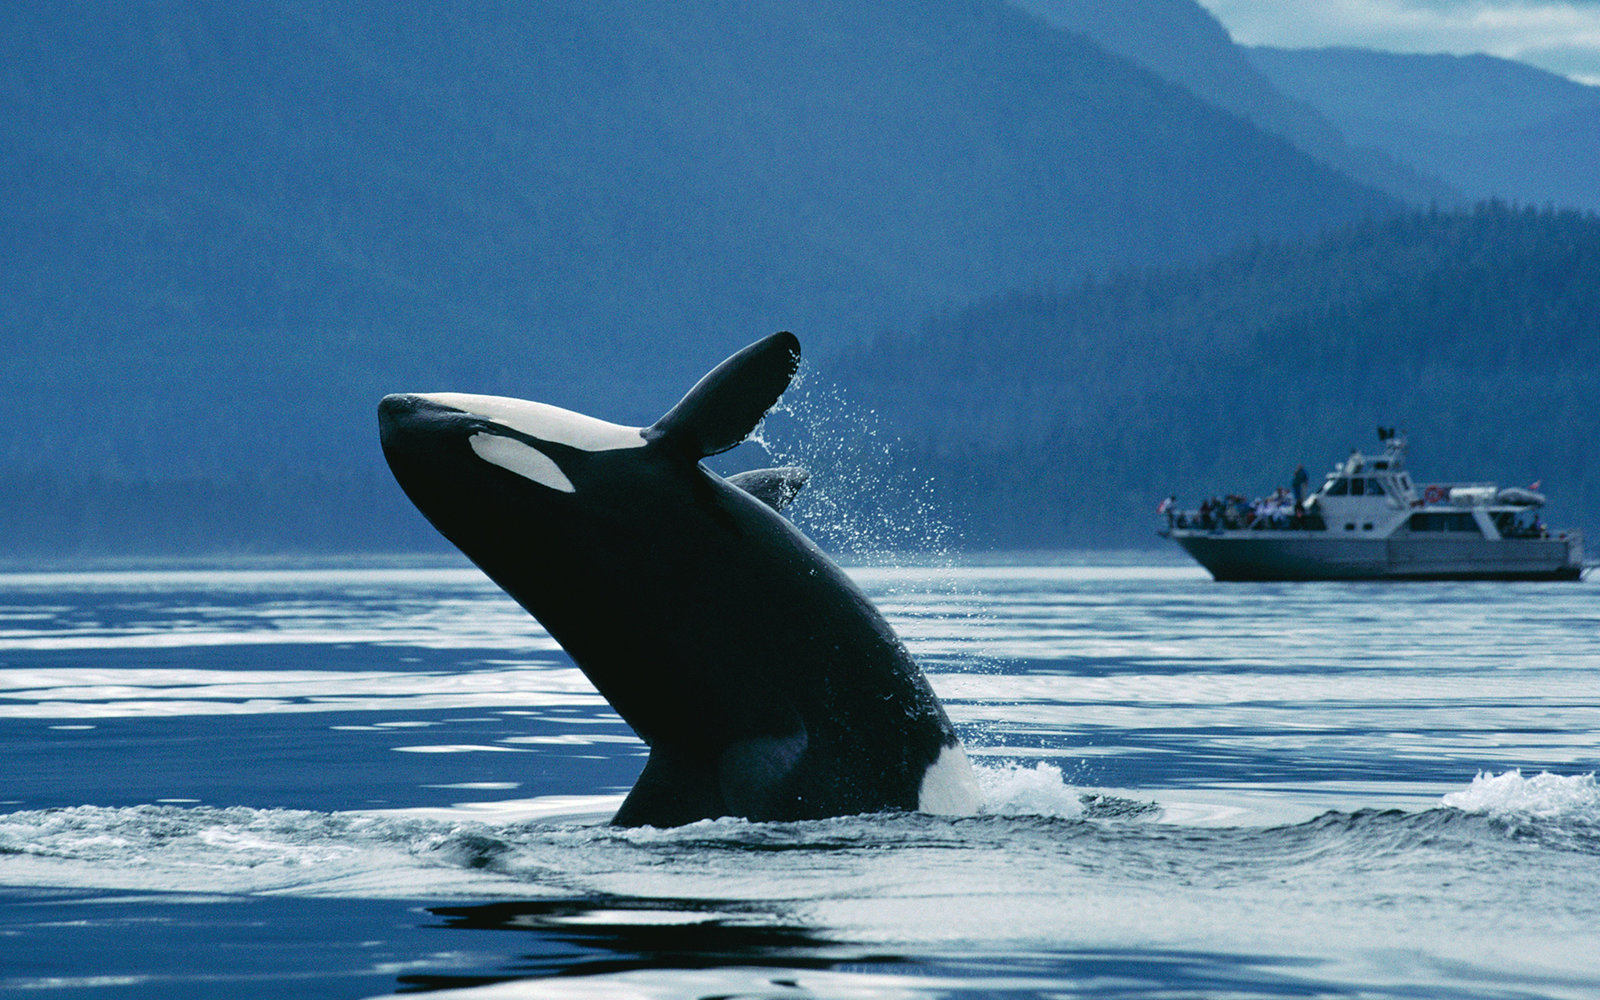 Orca (Orcinus orca) northern resident breaching in front of whale watching boat, Johnstone Strait, British Columbia, Canada